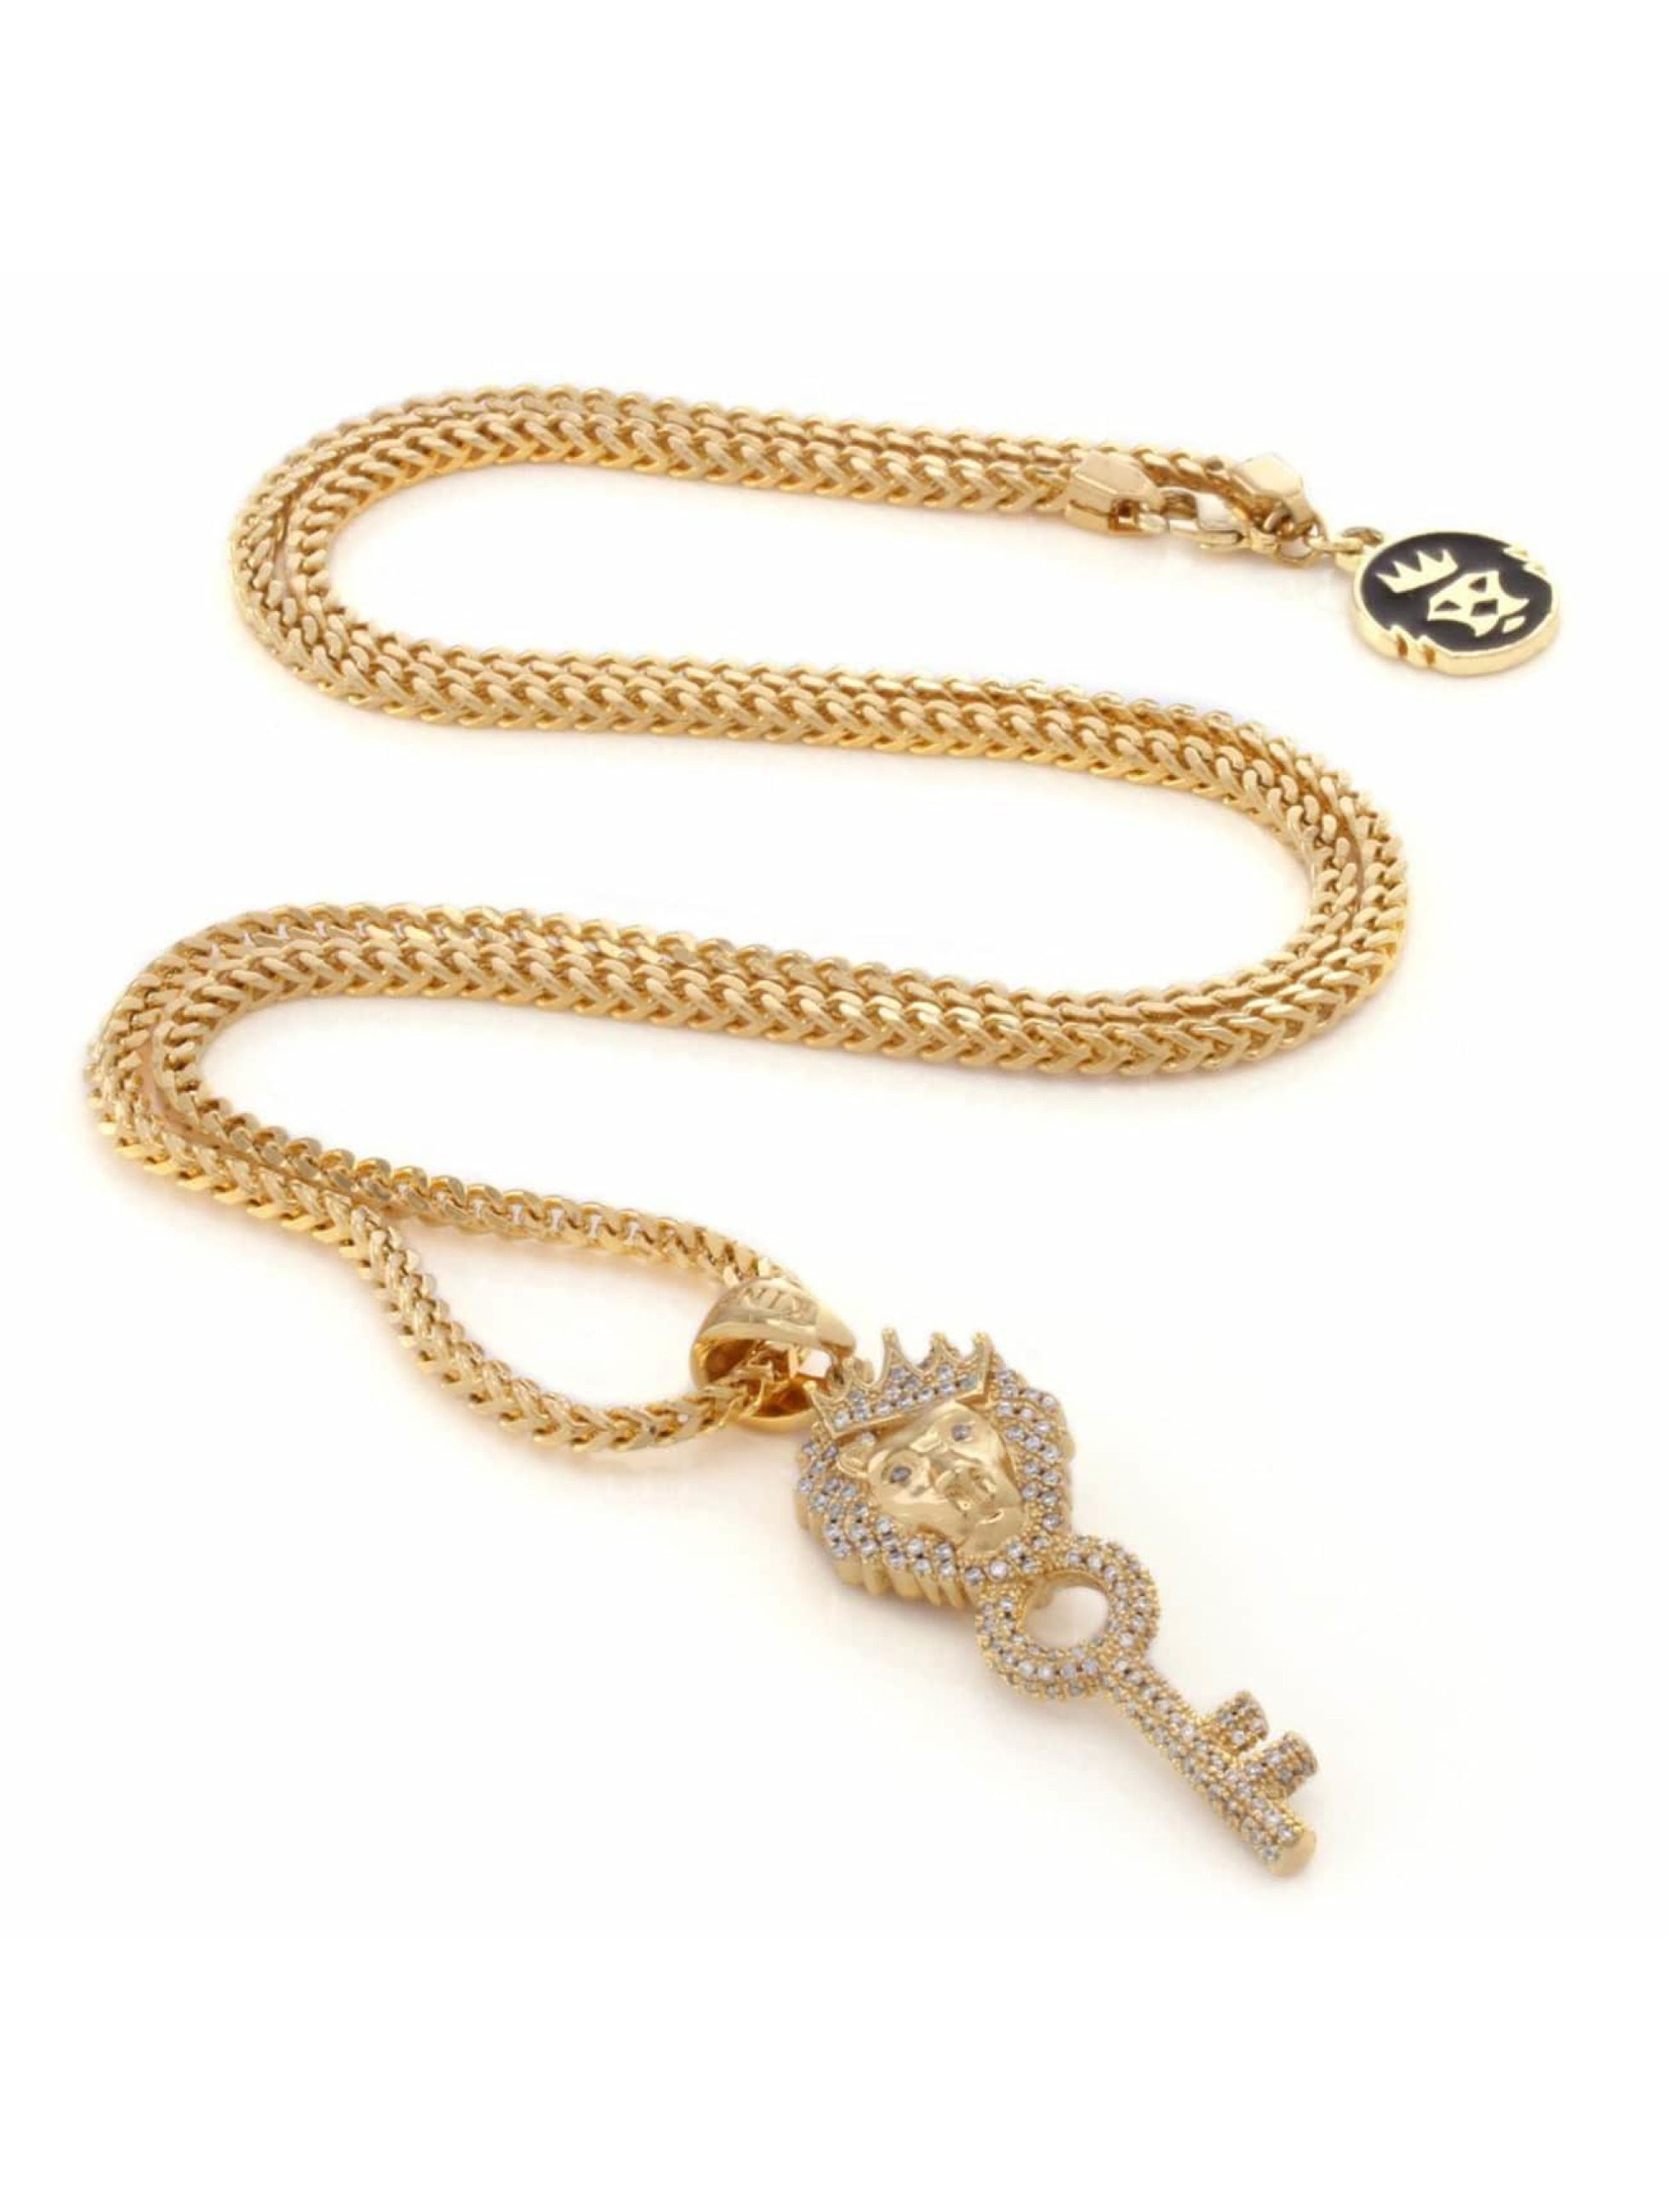 KING ICE Necklace Gold_Plated CZ The Major Key gold colored